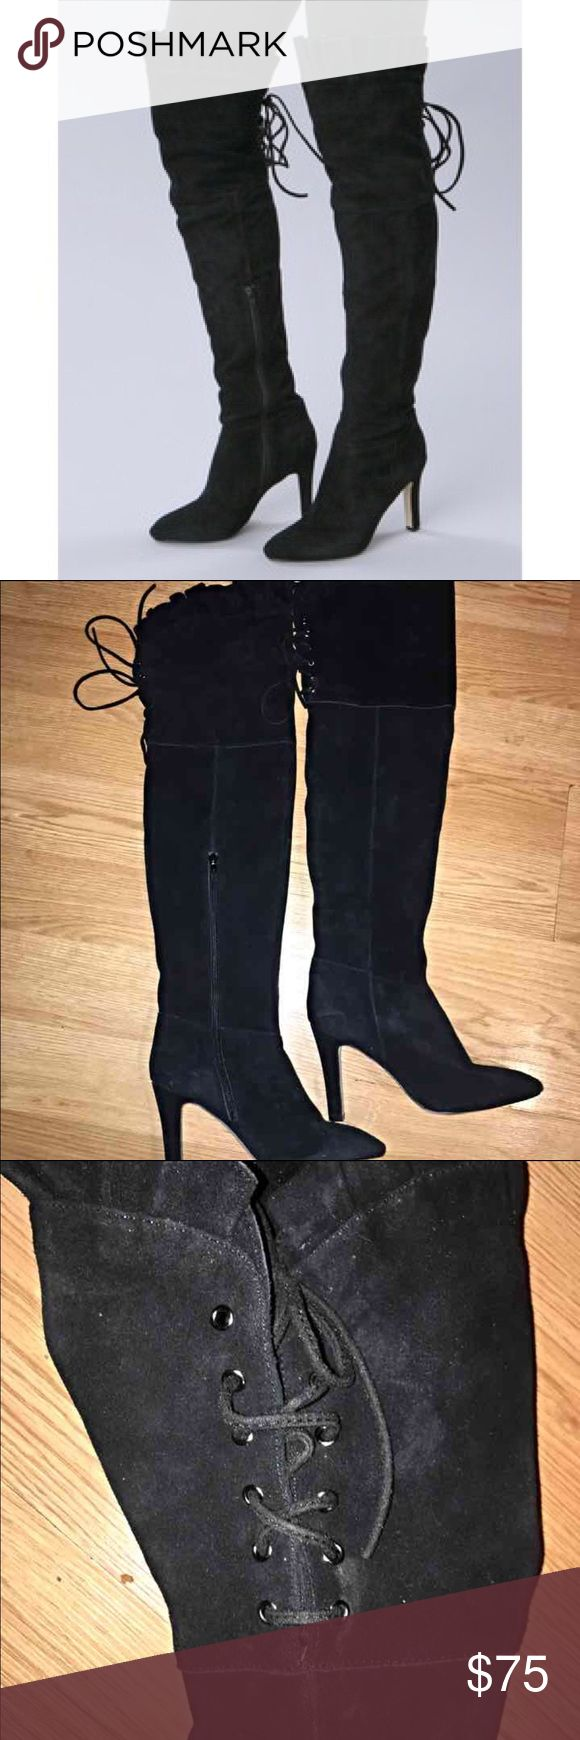 Kelsi Dagger sexy thigh high boots! Super sexy boots! Suede. Has shoestring ties in the back and zips up the side. In great condition! Kelsi Dagger Shoes Over the Knee Boots